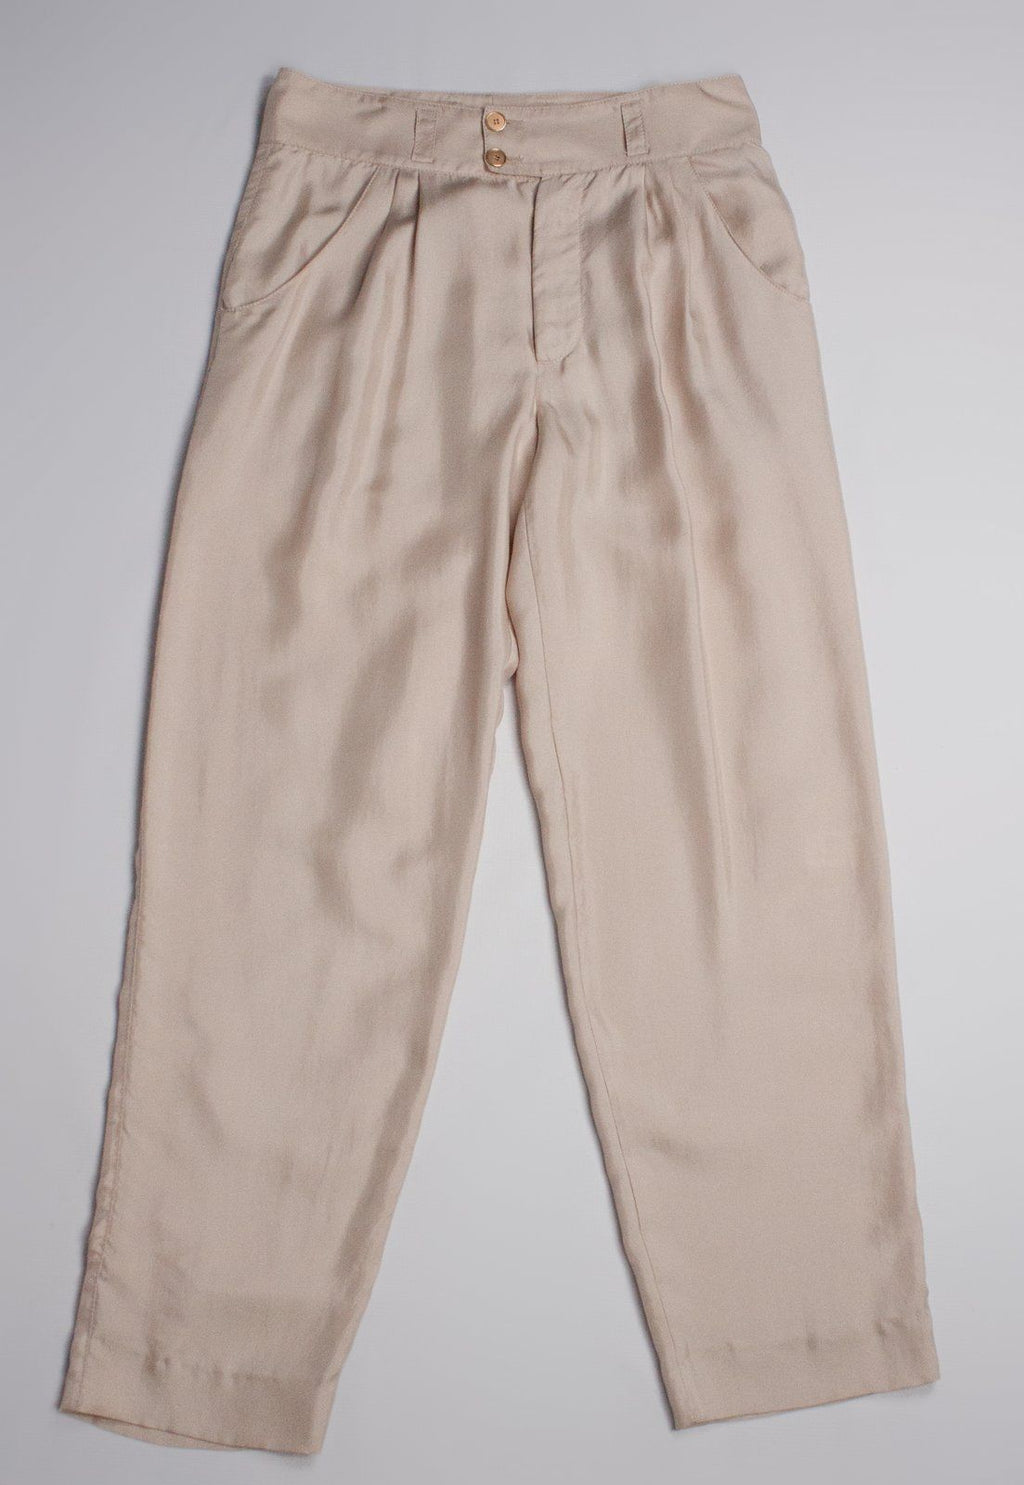 MISSONI Women's 100% Silk Nude Pink Pants SIZE US 6 - secondfirst